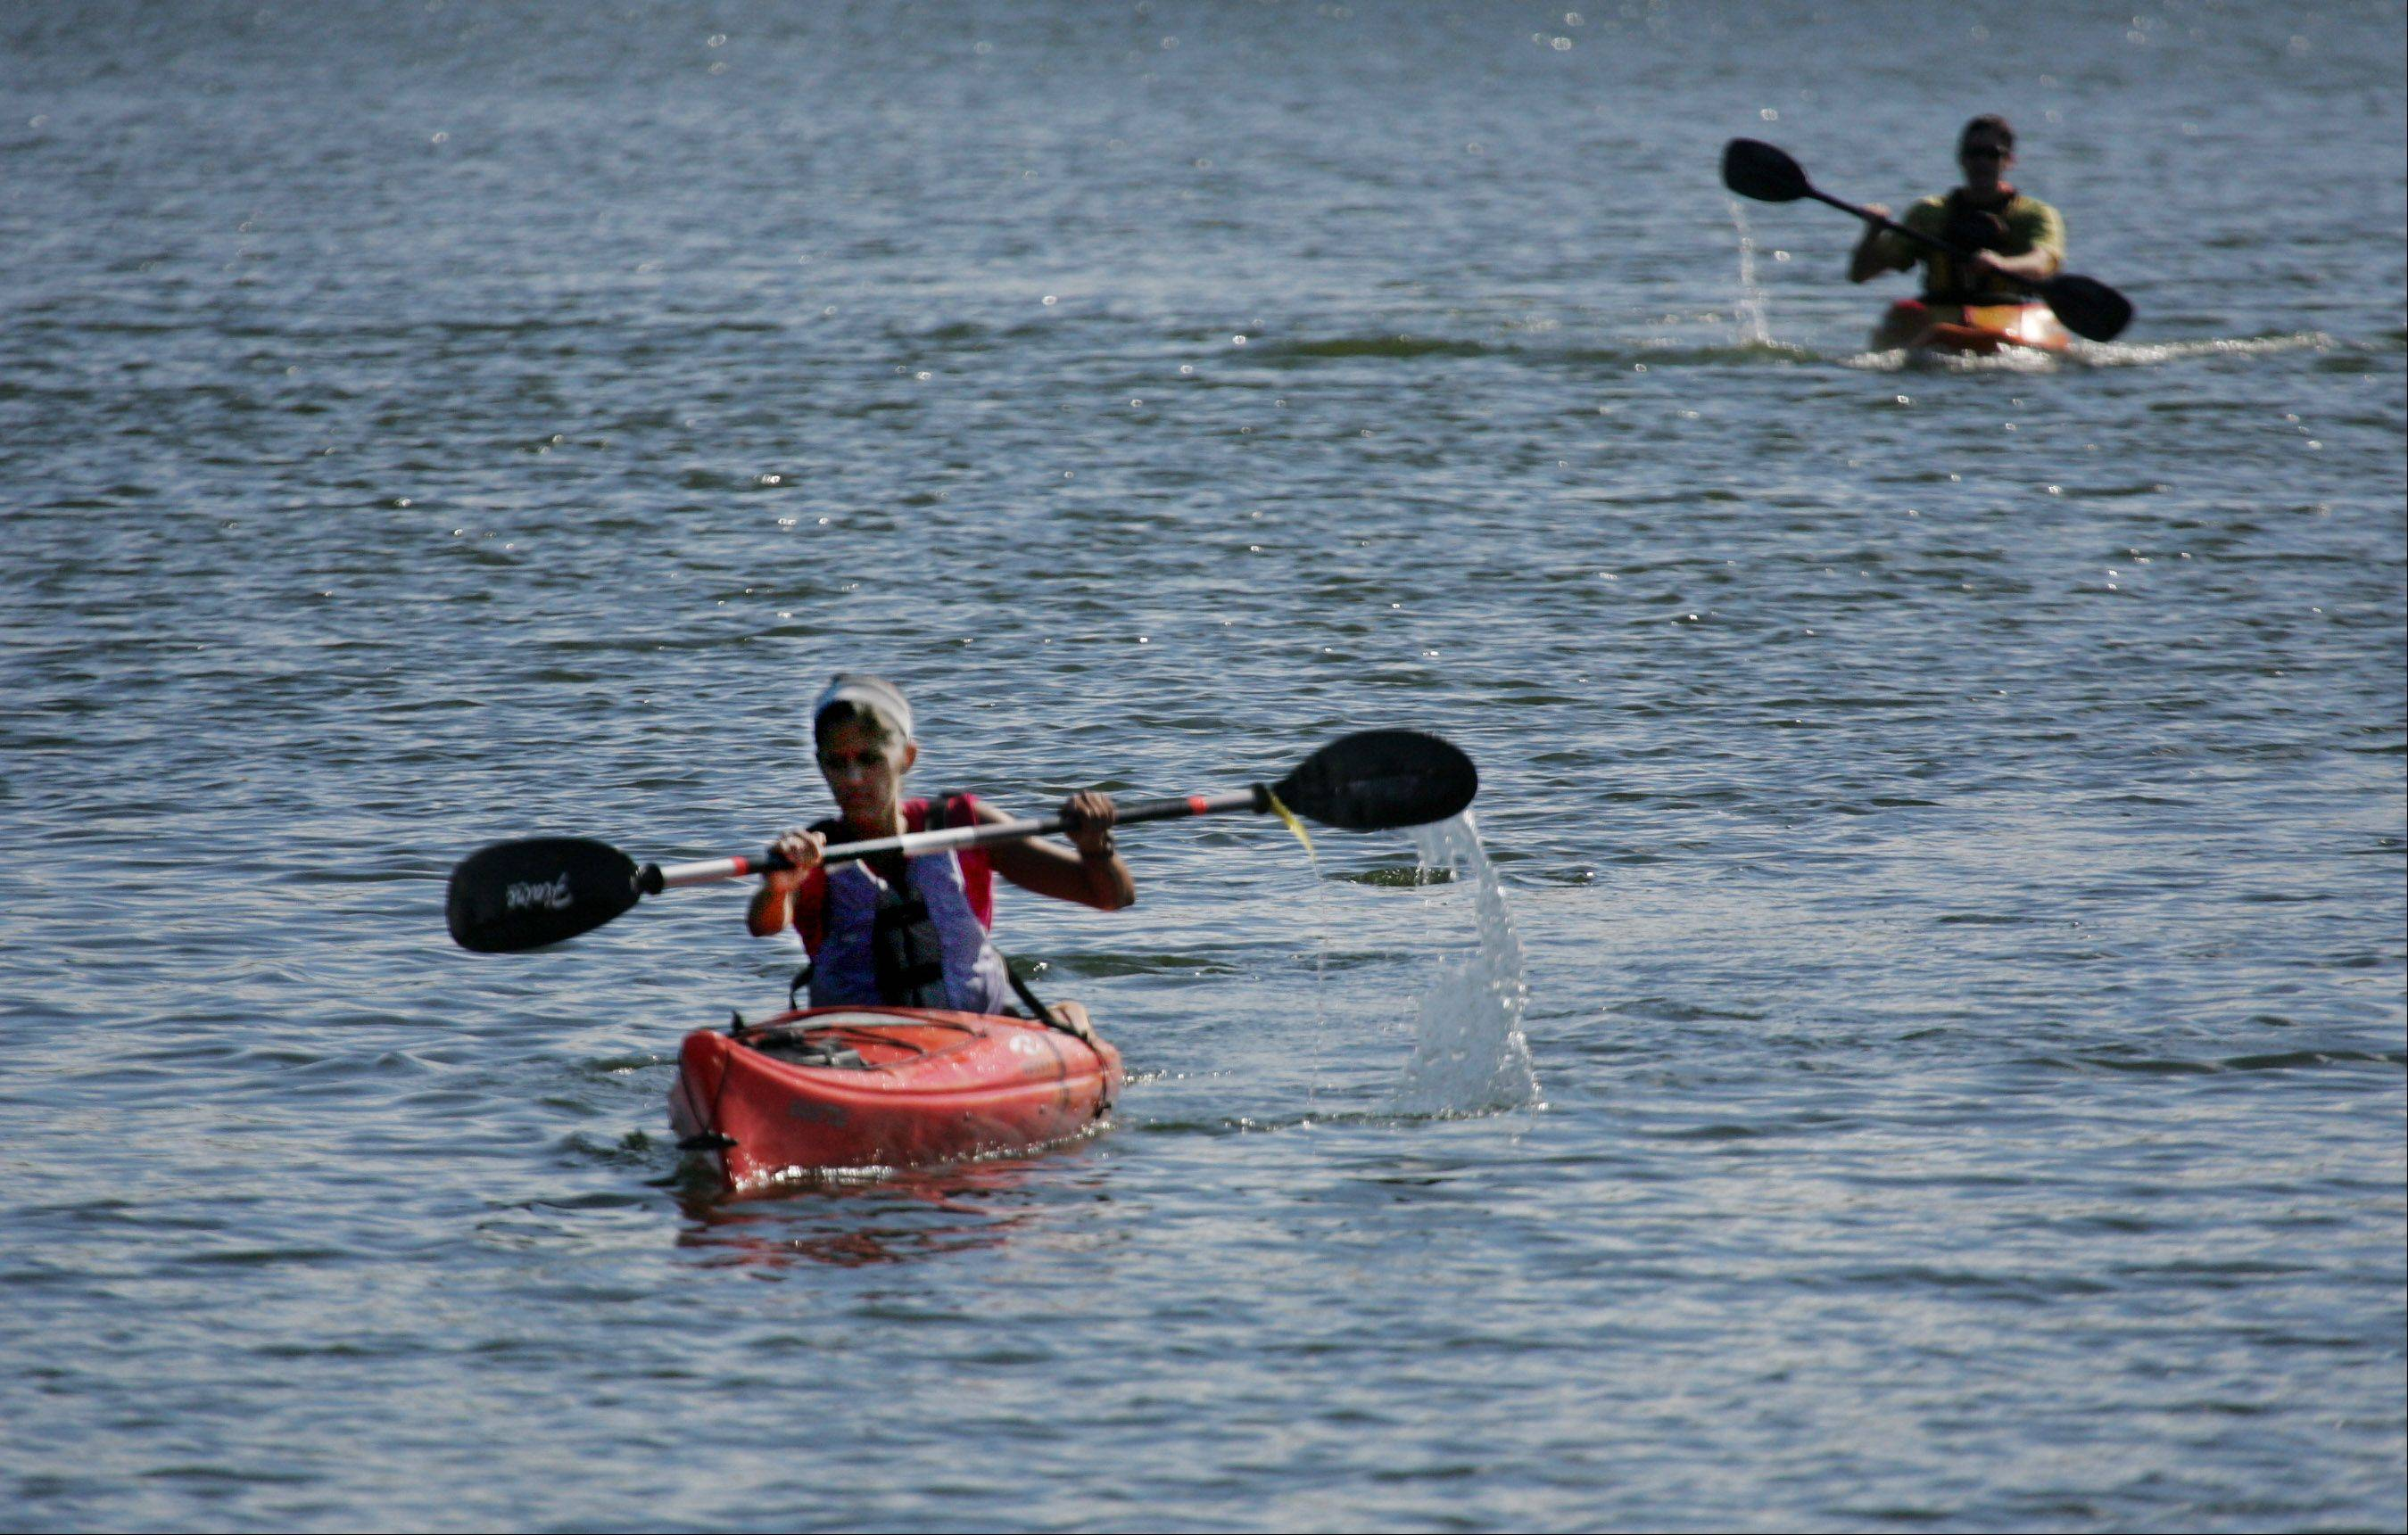 Emily Gregorich of Mundelein paddles to the finish during the Floating Zucchini Kayak Relay Races Sunday at Twin Lakes Recreation Area in Palatine. The event raised money for Smart Farms of Barrington that advocates sustainable gardening.